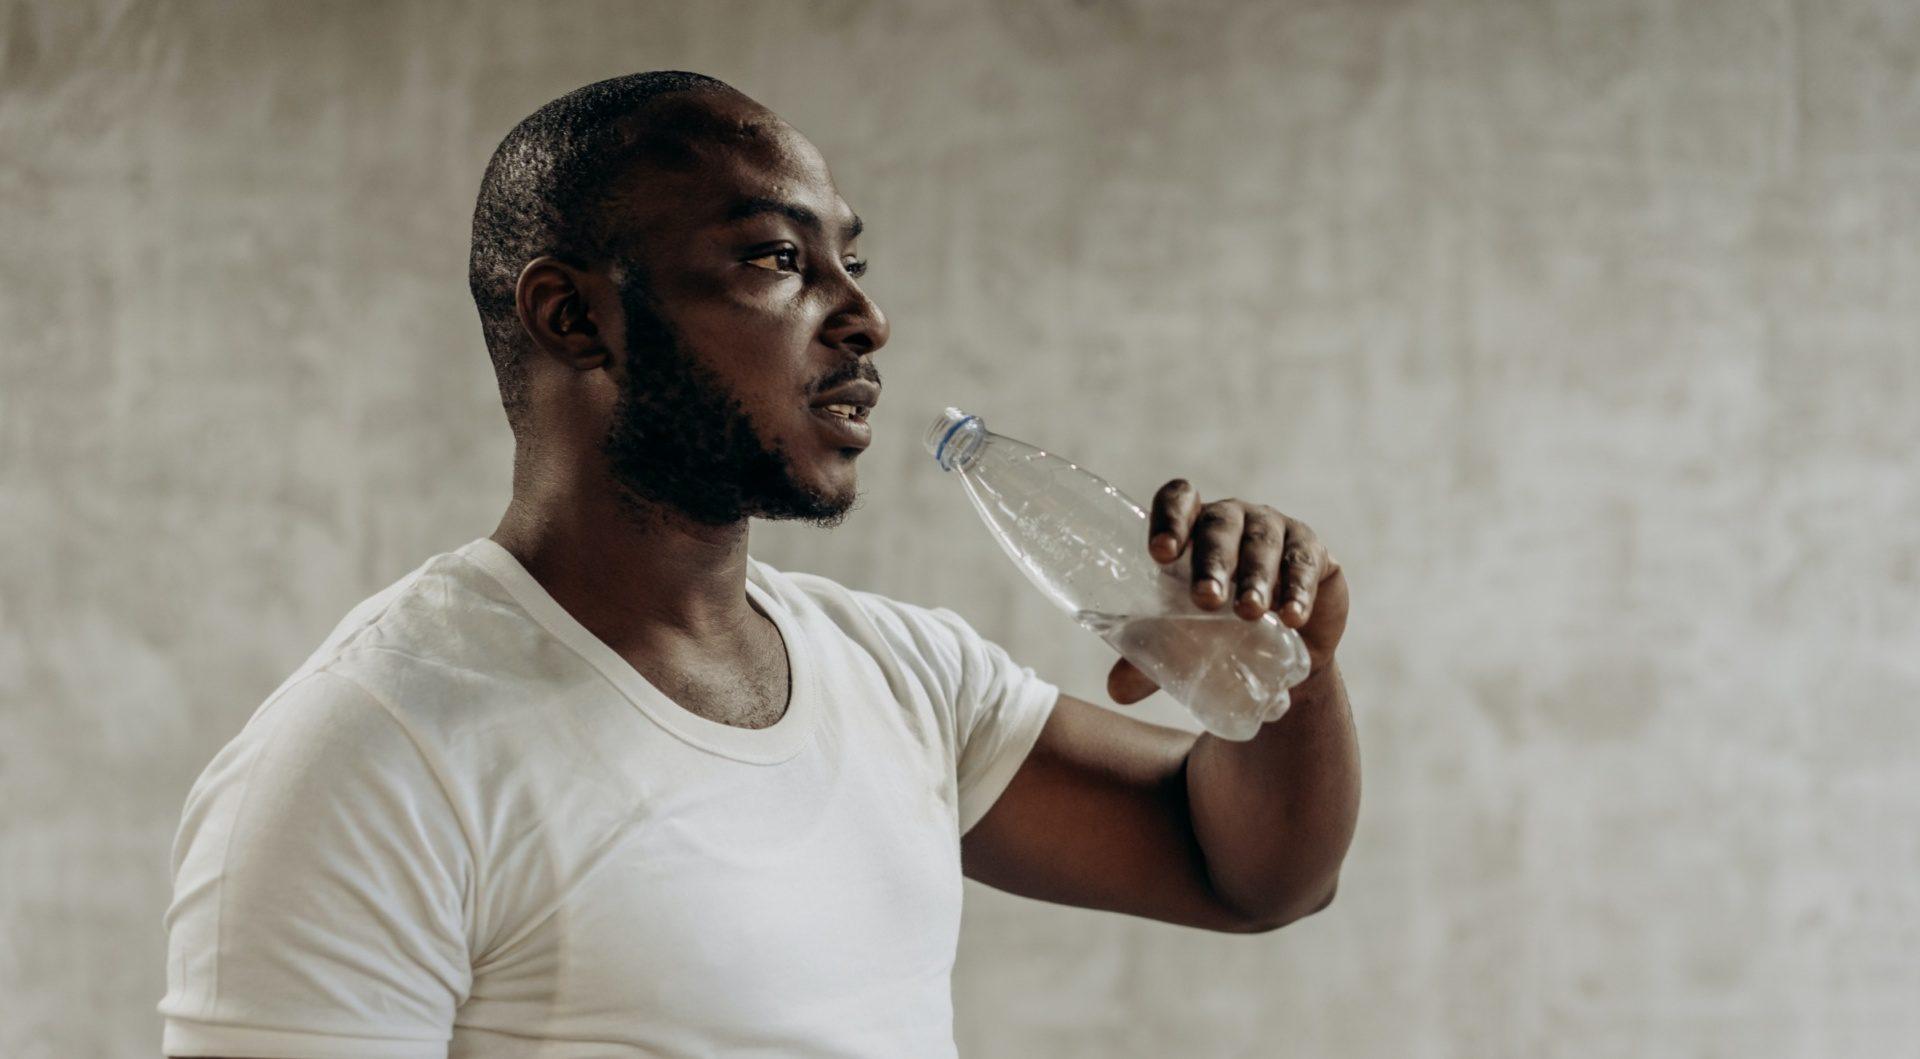 man drinking water from a bottle with a white t shirt on